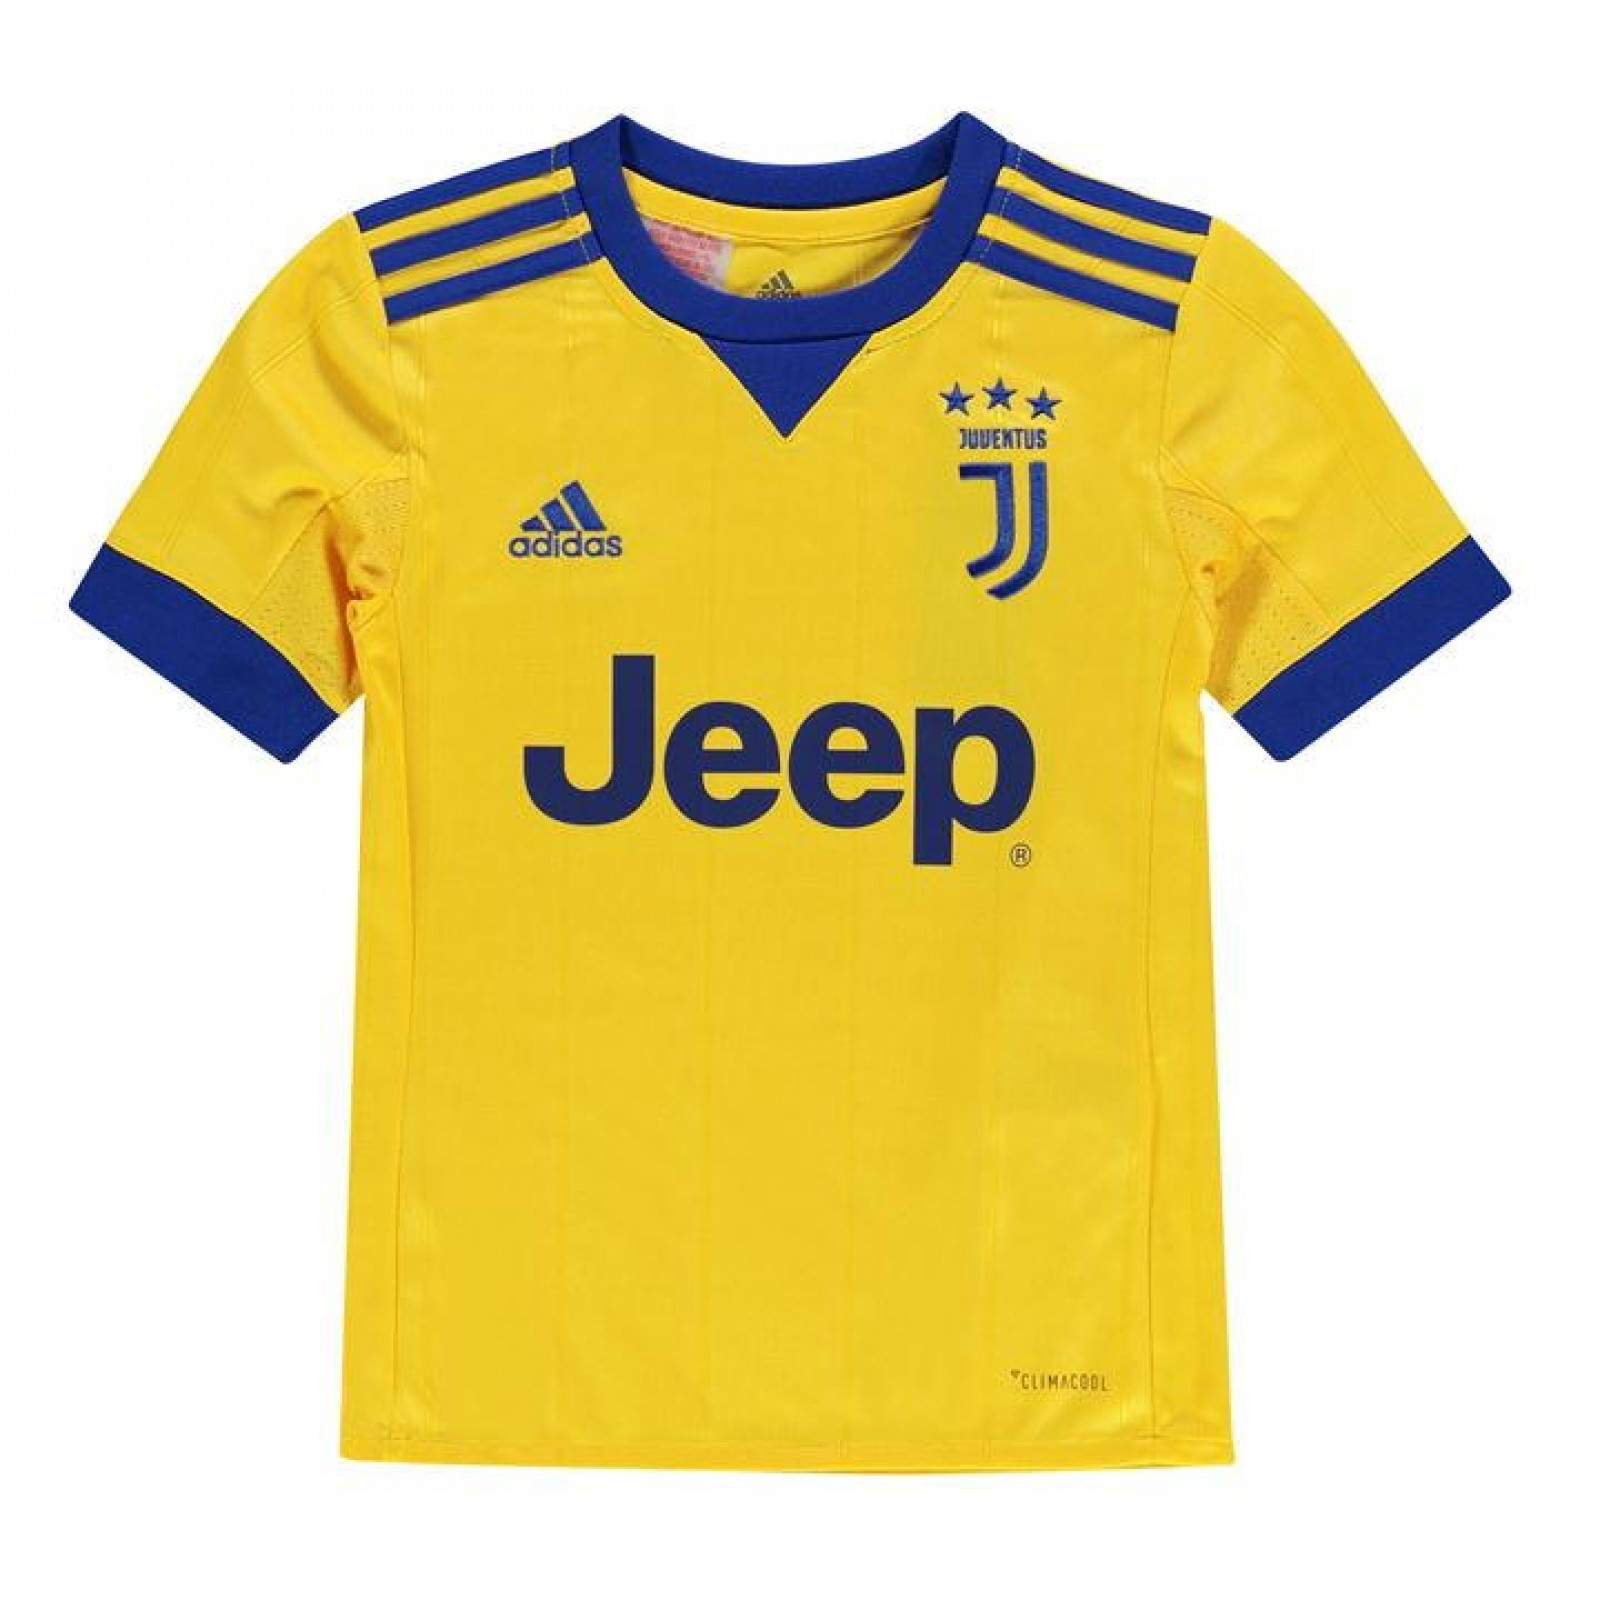 finest selection da15b 0ec69 Childrens Juventus Away 2017/18 Football Kit | Free Shirt ...